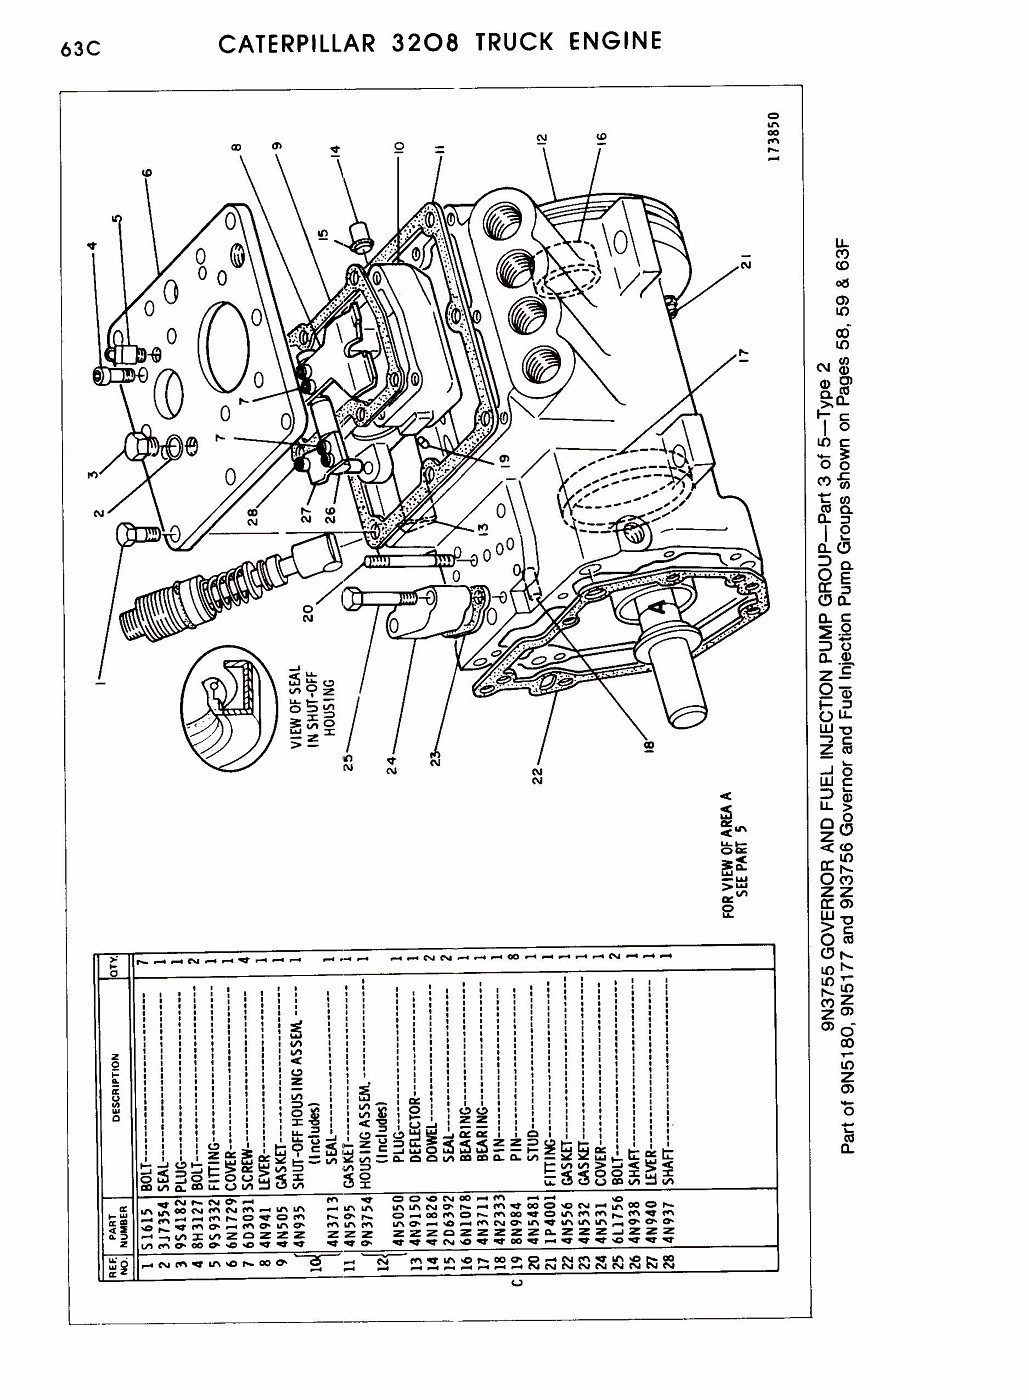 caterpillar 3512b wiring diagram arctic cat atv diagrams gmc truck wiring  diagrams 1990 gmc topkick wiring